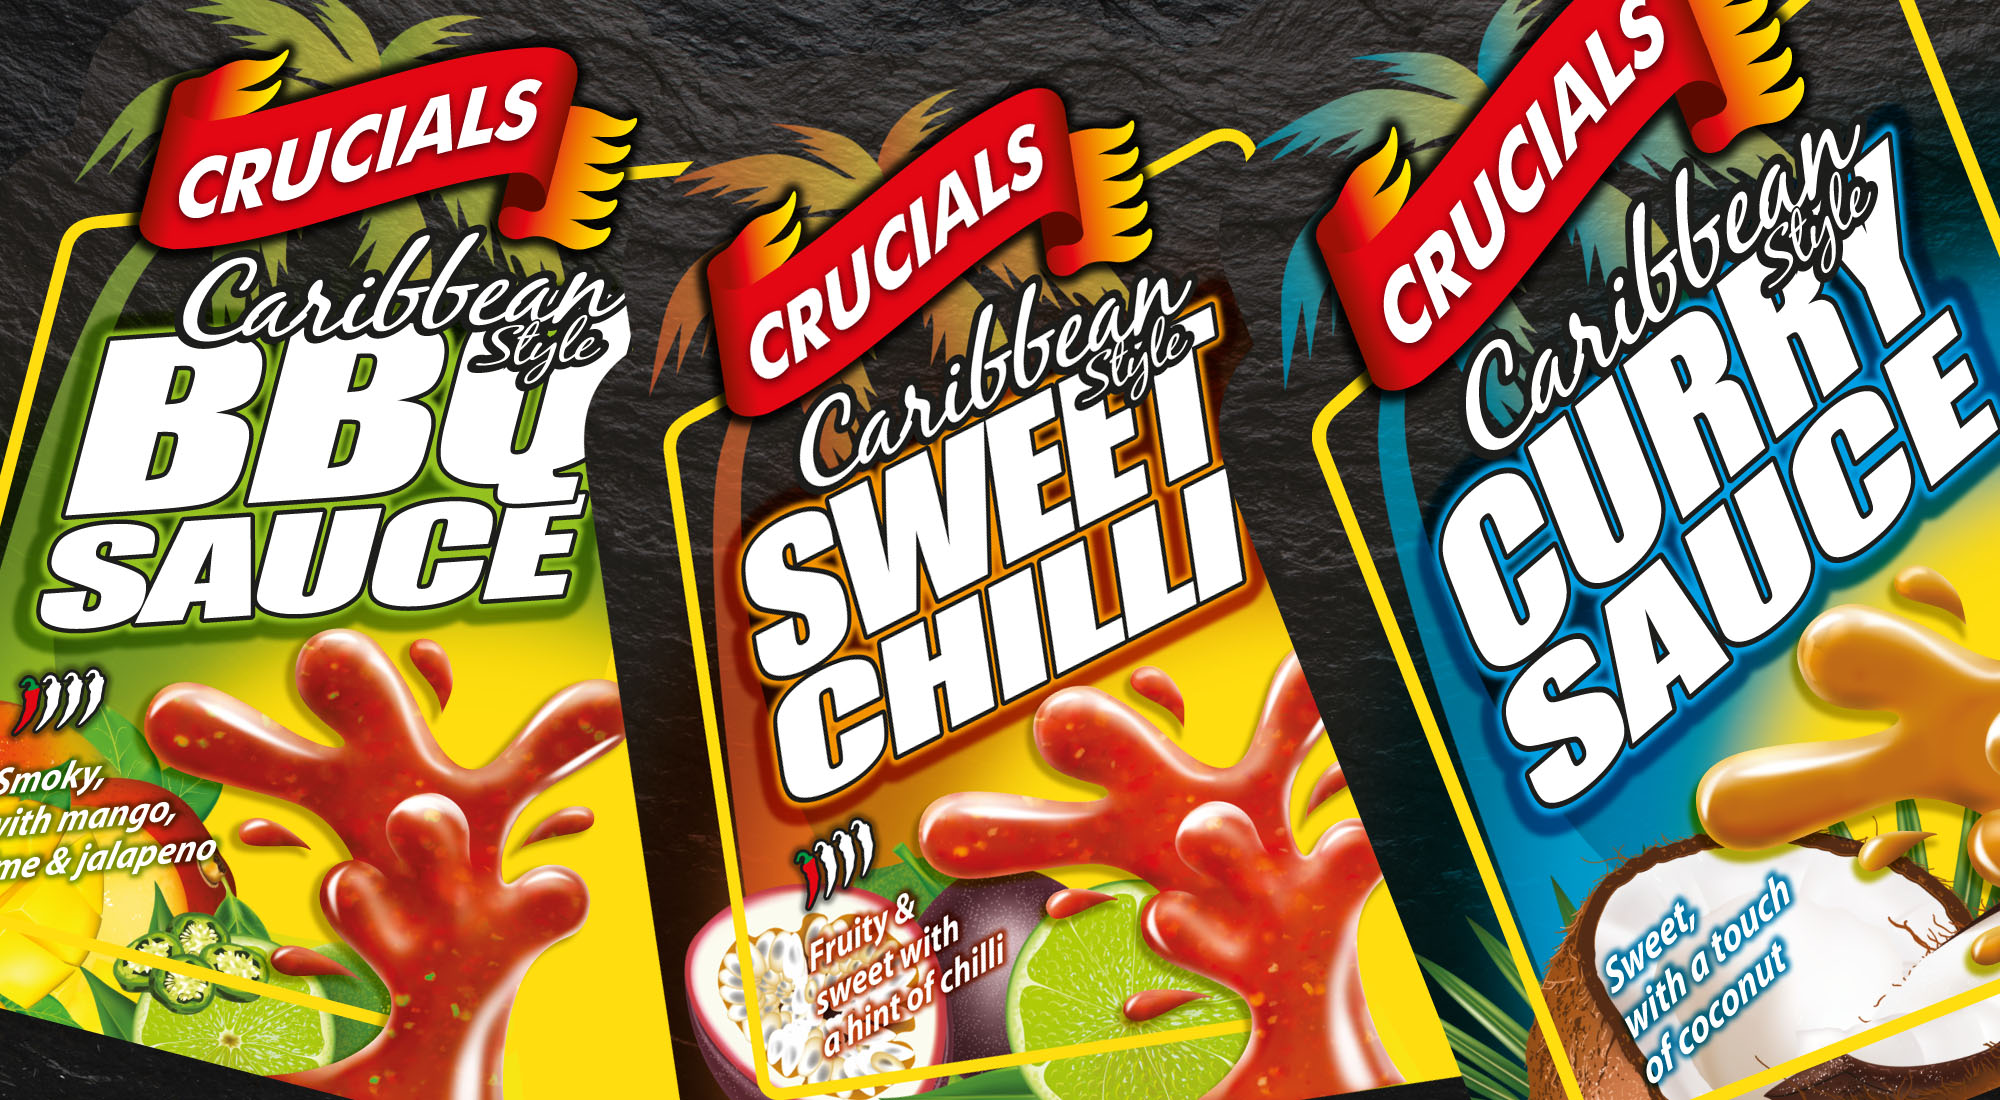 Crucials Sauce Label Design